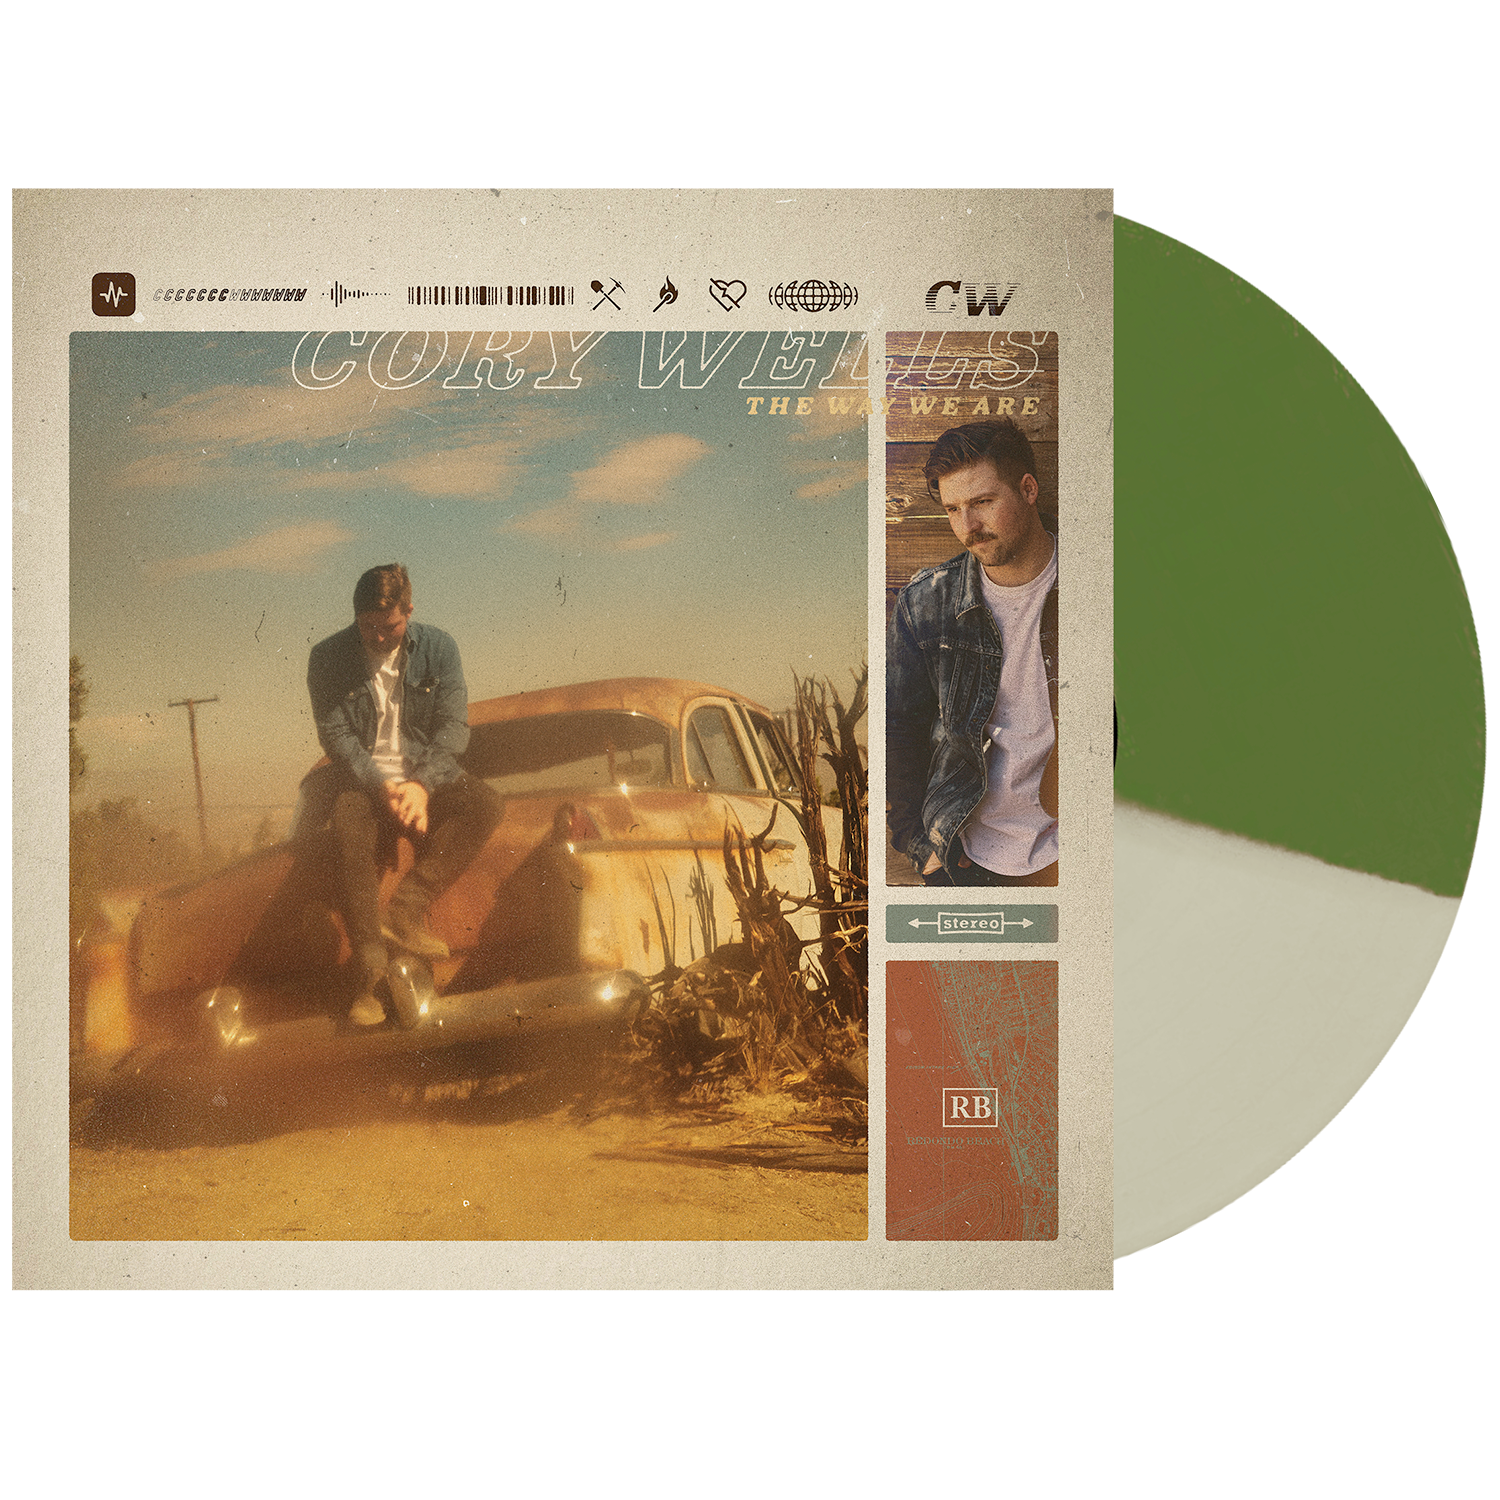 Cory Wells 'The Way We Are' LP Various 1 (Half Olive Green / Half Bone)